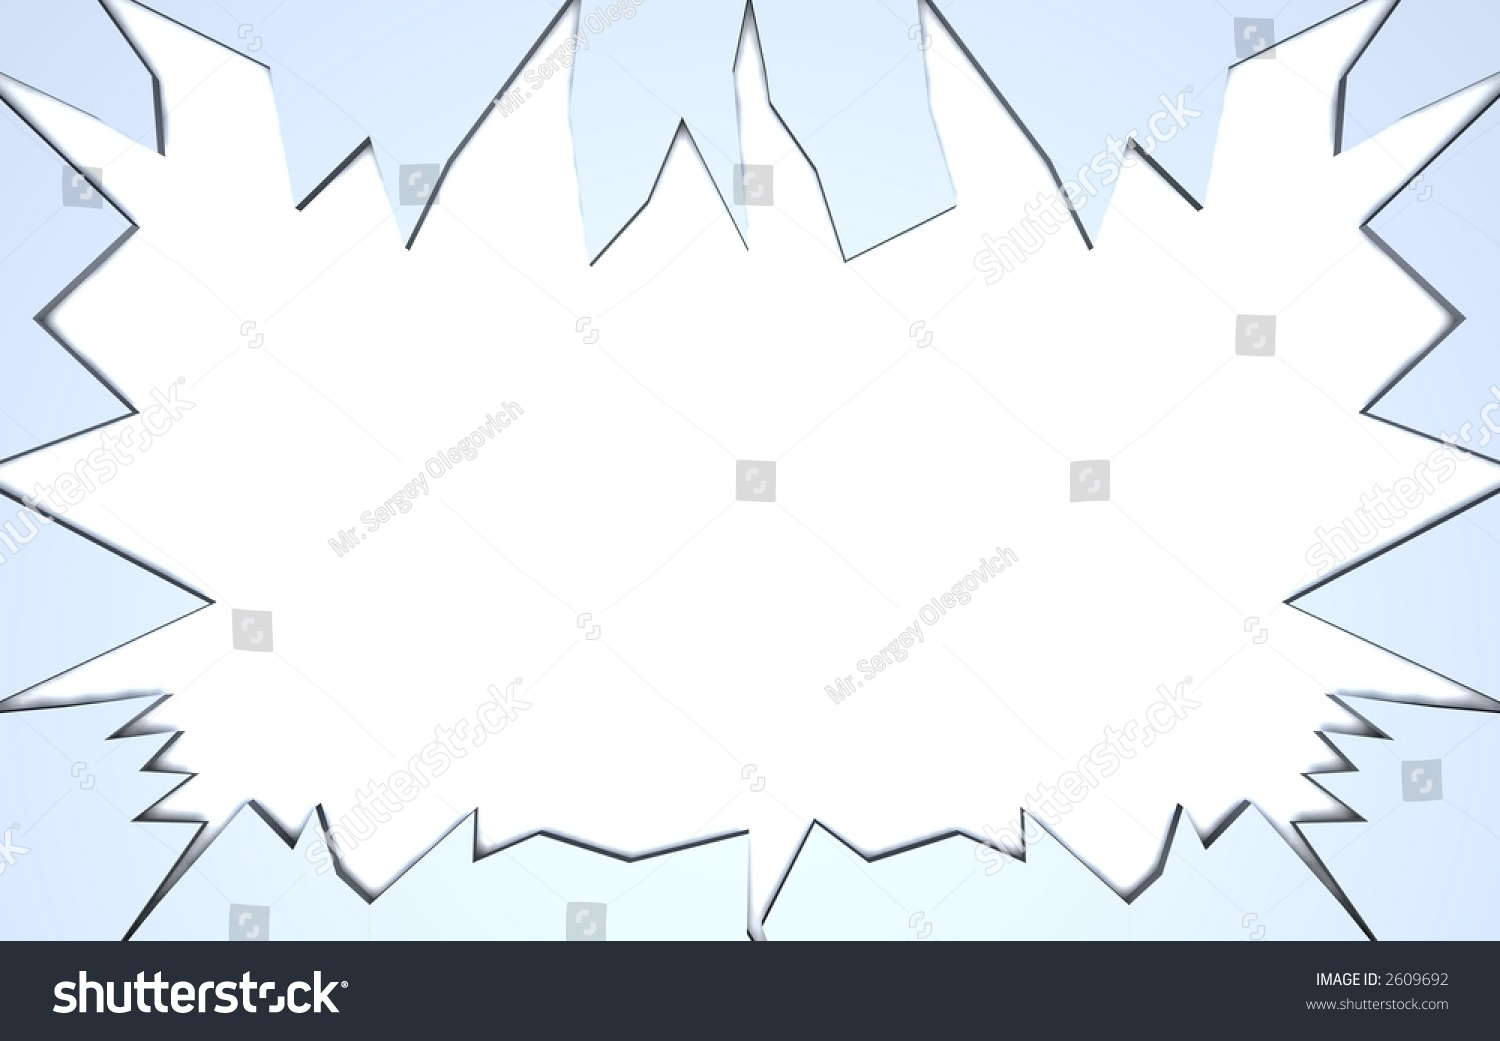 Broken Frame Stock Illustration 2609692 - Shutterstock